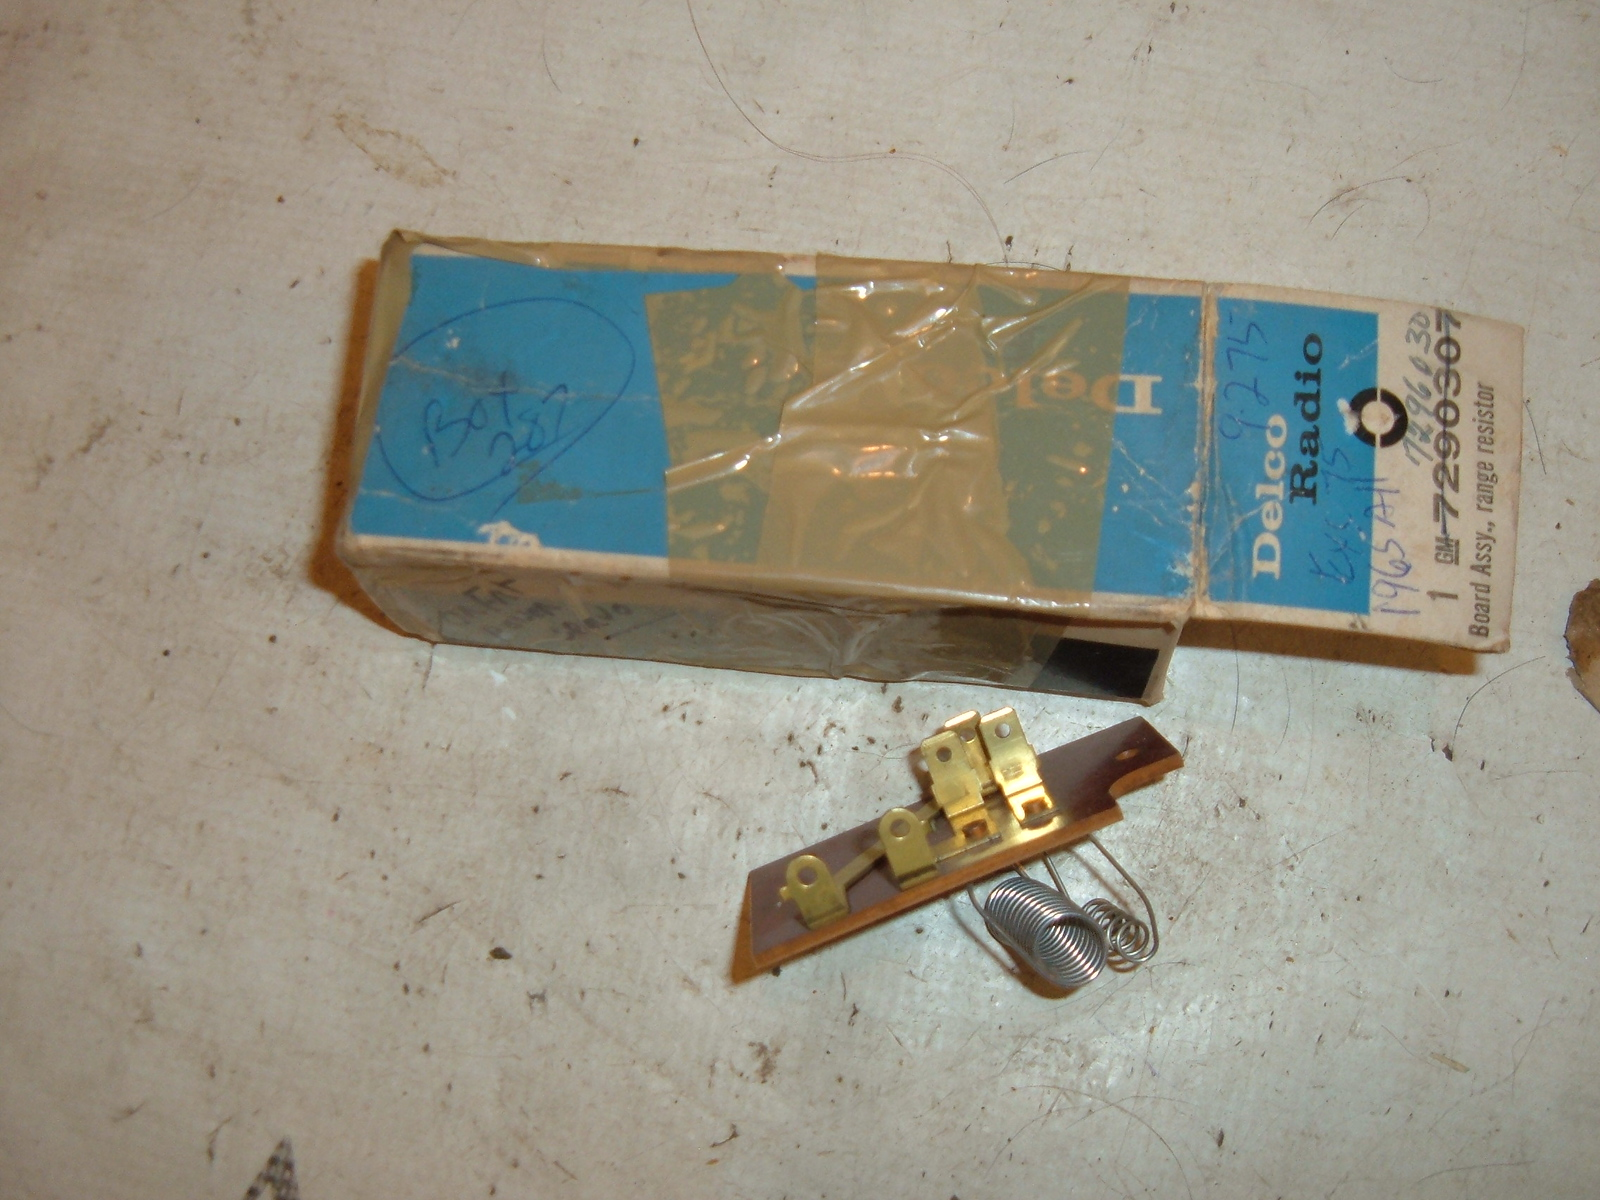 1965 cadillac air conditioning blower relay nos gm # 7296030 (z 7296030)